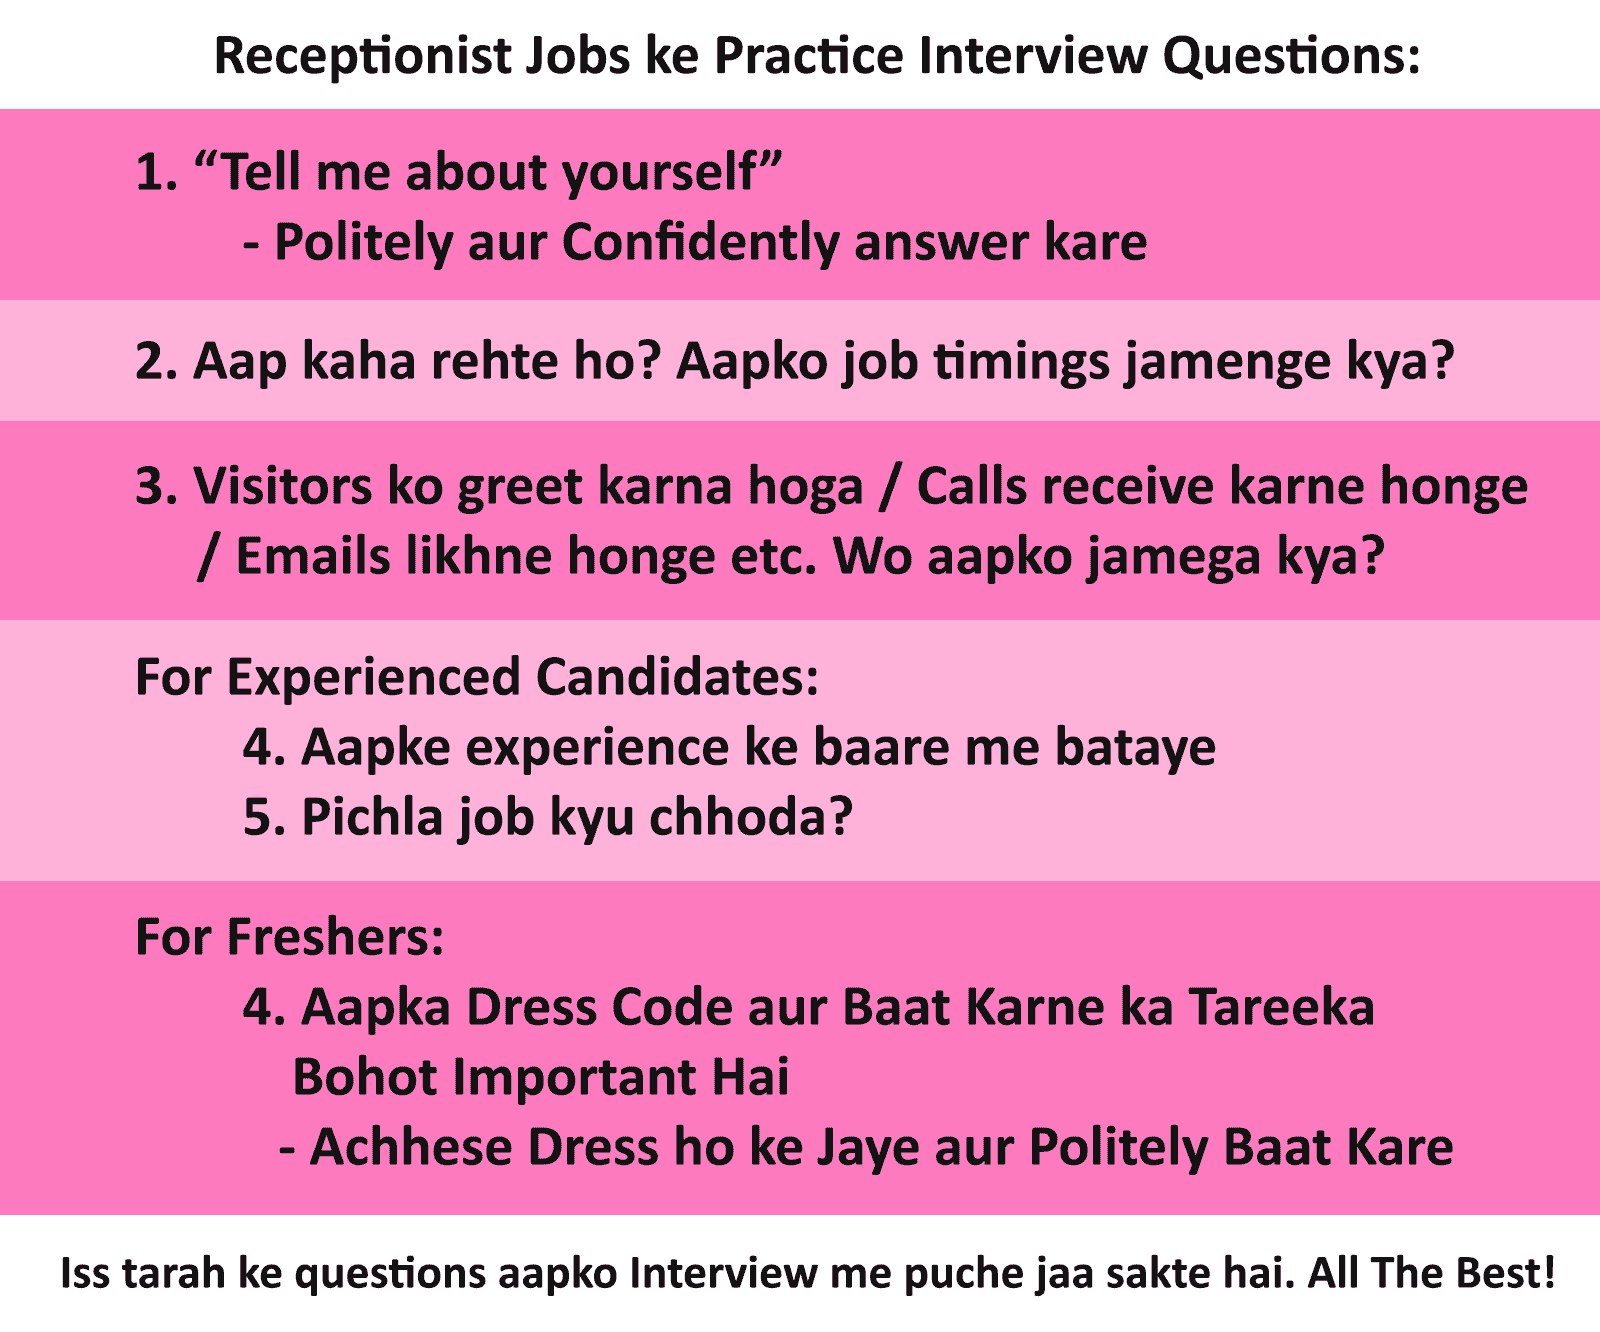 Interview Questions for Receptionist, Front Office Jobs